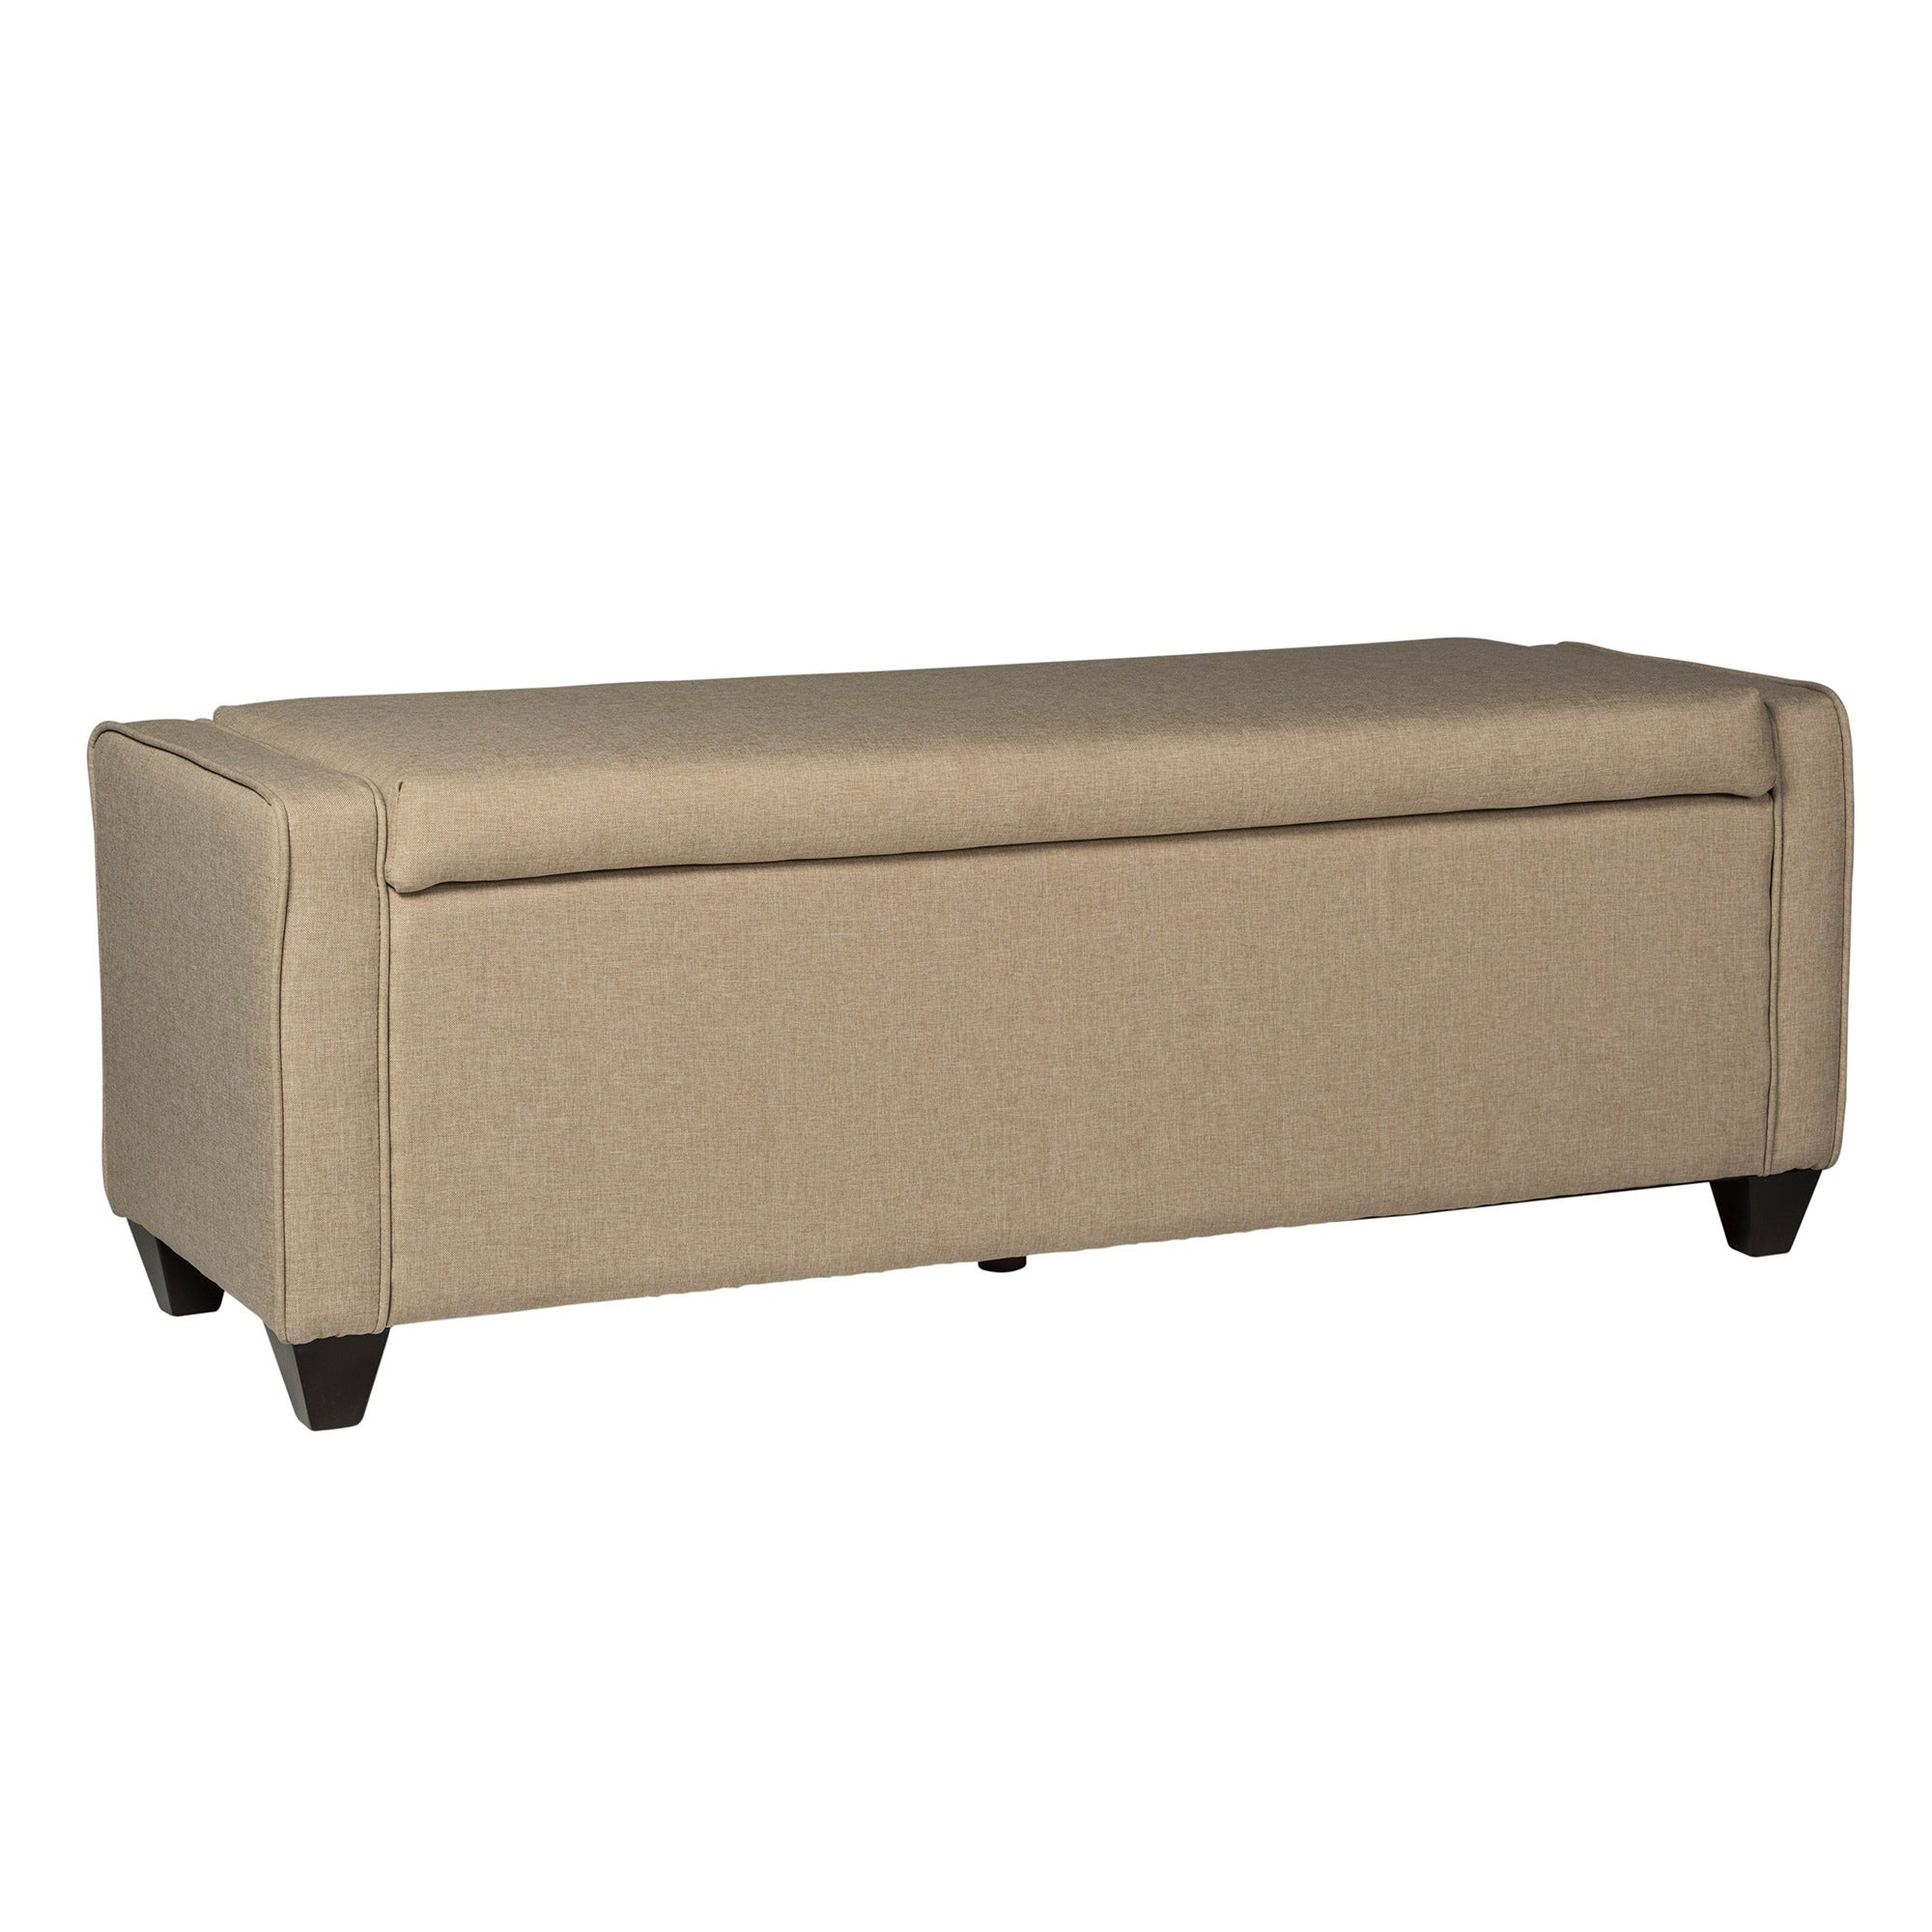 Merveilleux Shop Natural Linen Flip Top Storage Bench   Free Shipping Today    Overstock.com   10883662